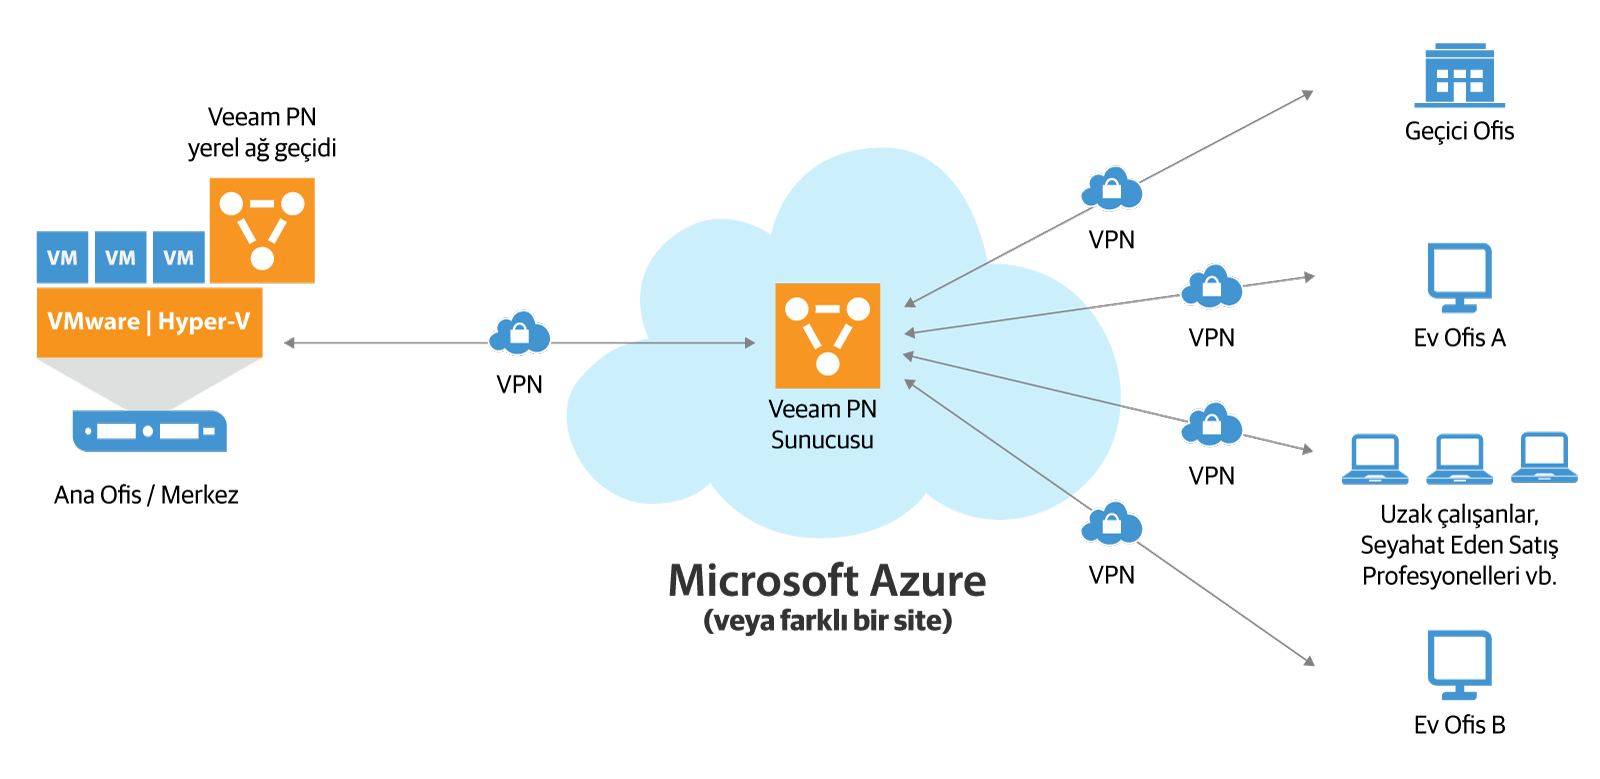 veeam_pn_for_microsoft_azure_tr.png